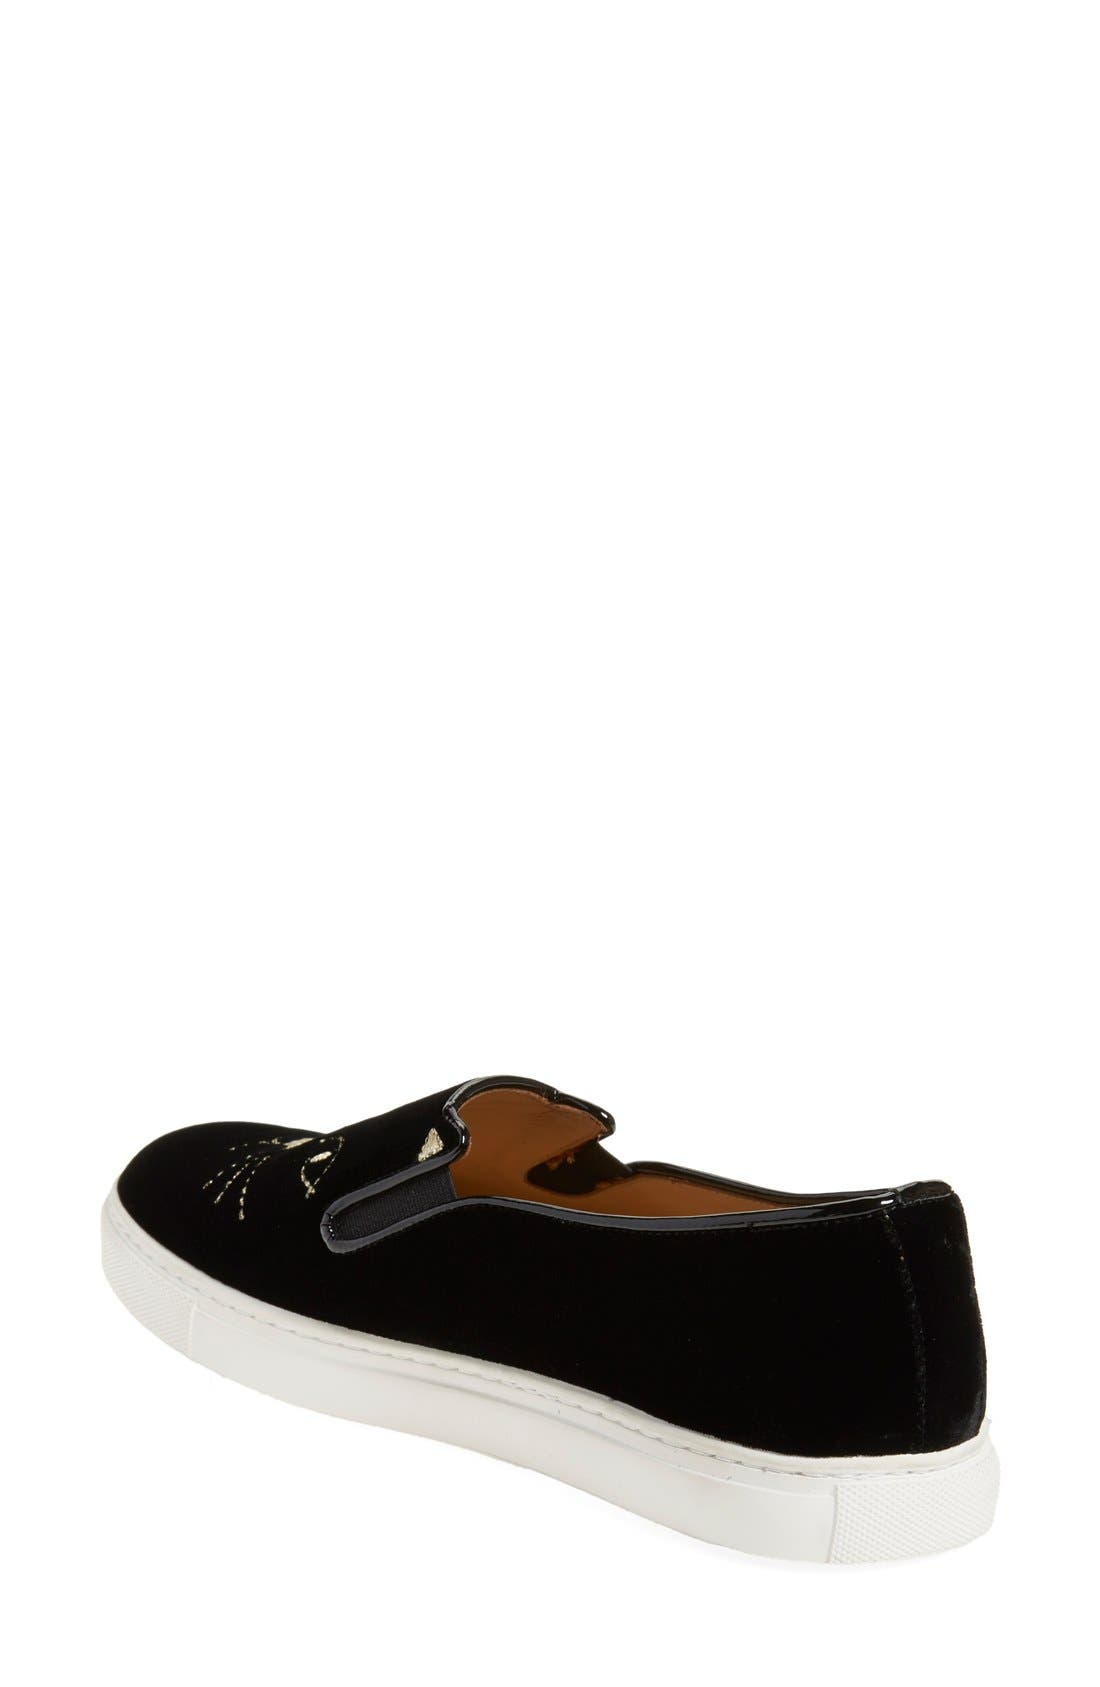 Alternate Image 2  - Charlotte Olympia Cool Cats Slip-On Sneaker (Women)